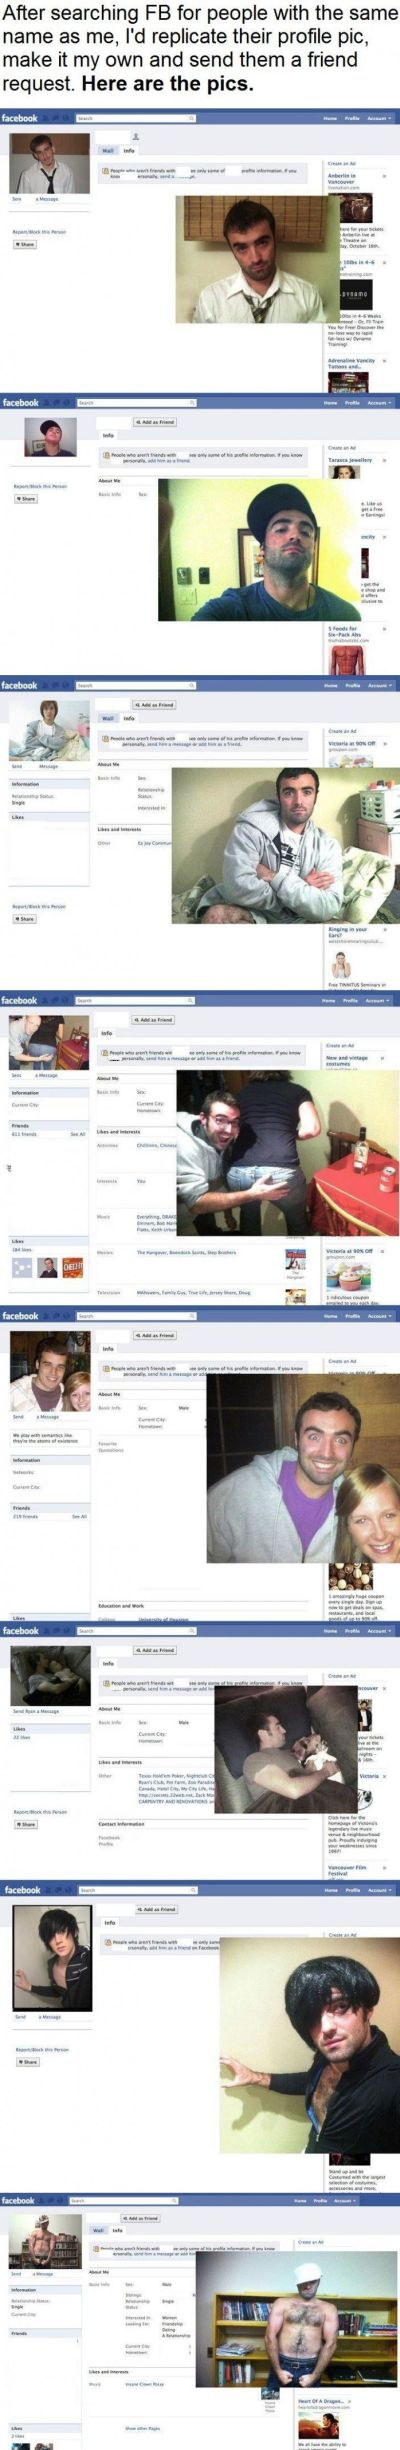 Funny Facebook profile pictures imitations